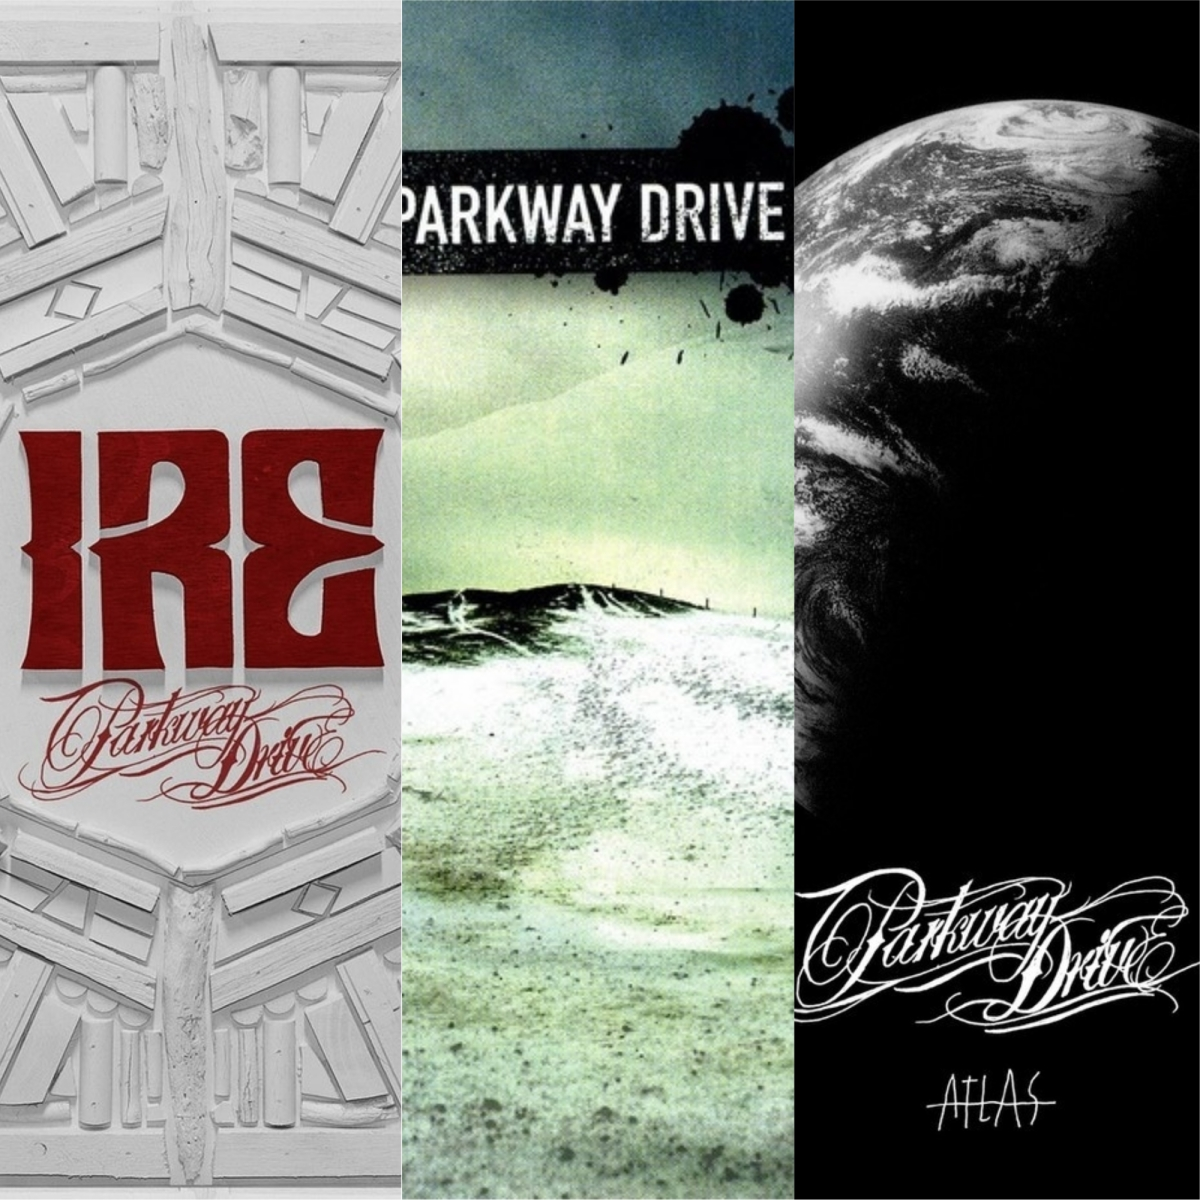 Ranking Every Parkway Drive Album from Worst toBest